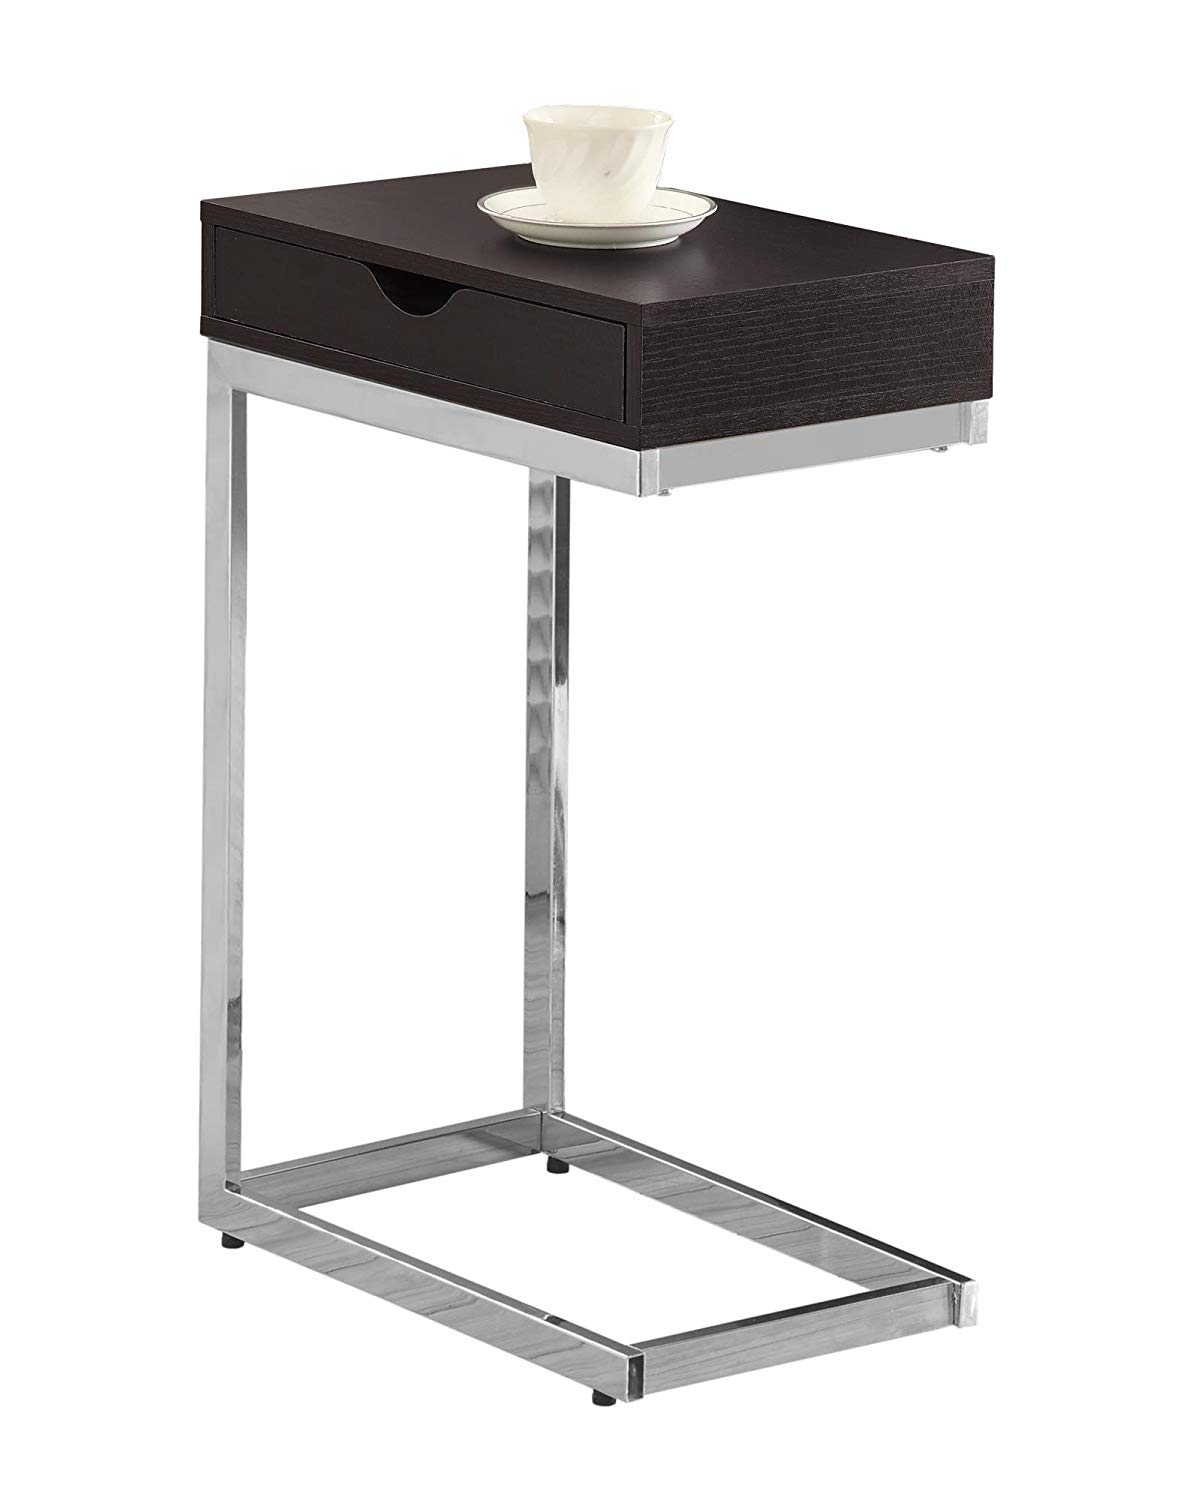 monarch specialties accent table with drawer black metal chrome cappuccino kitchen dining solid wood coffee target dressers outdoor set cover hobby lobby ethan allen chairs dog